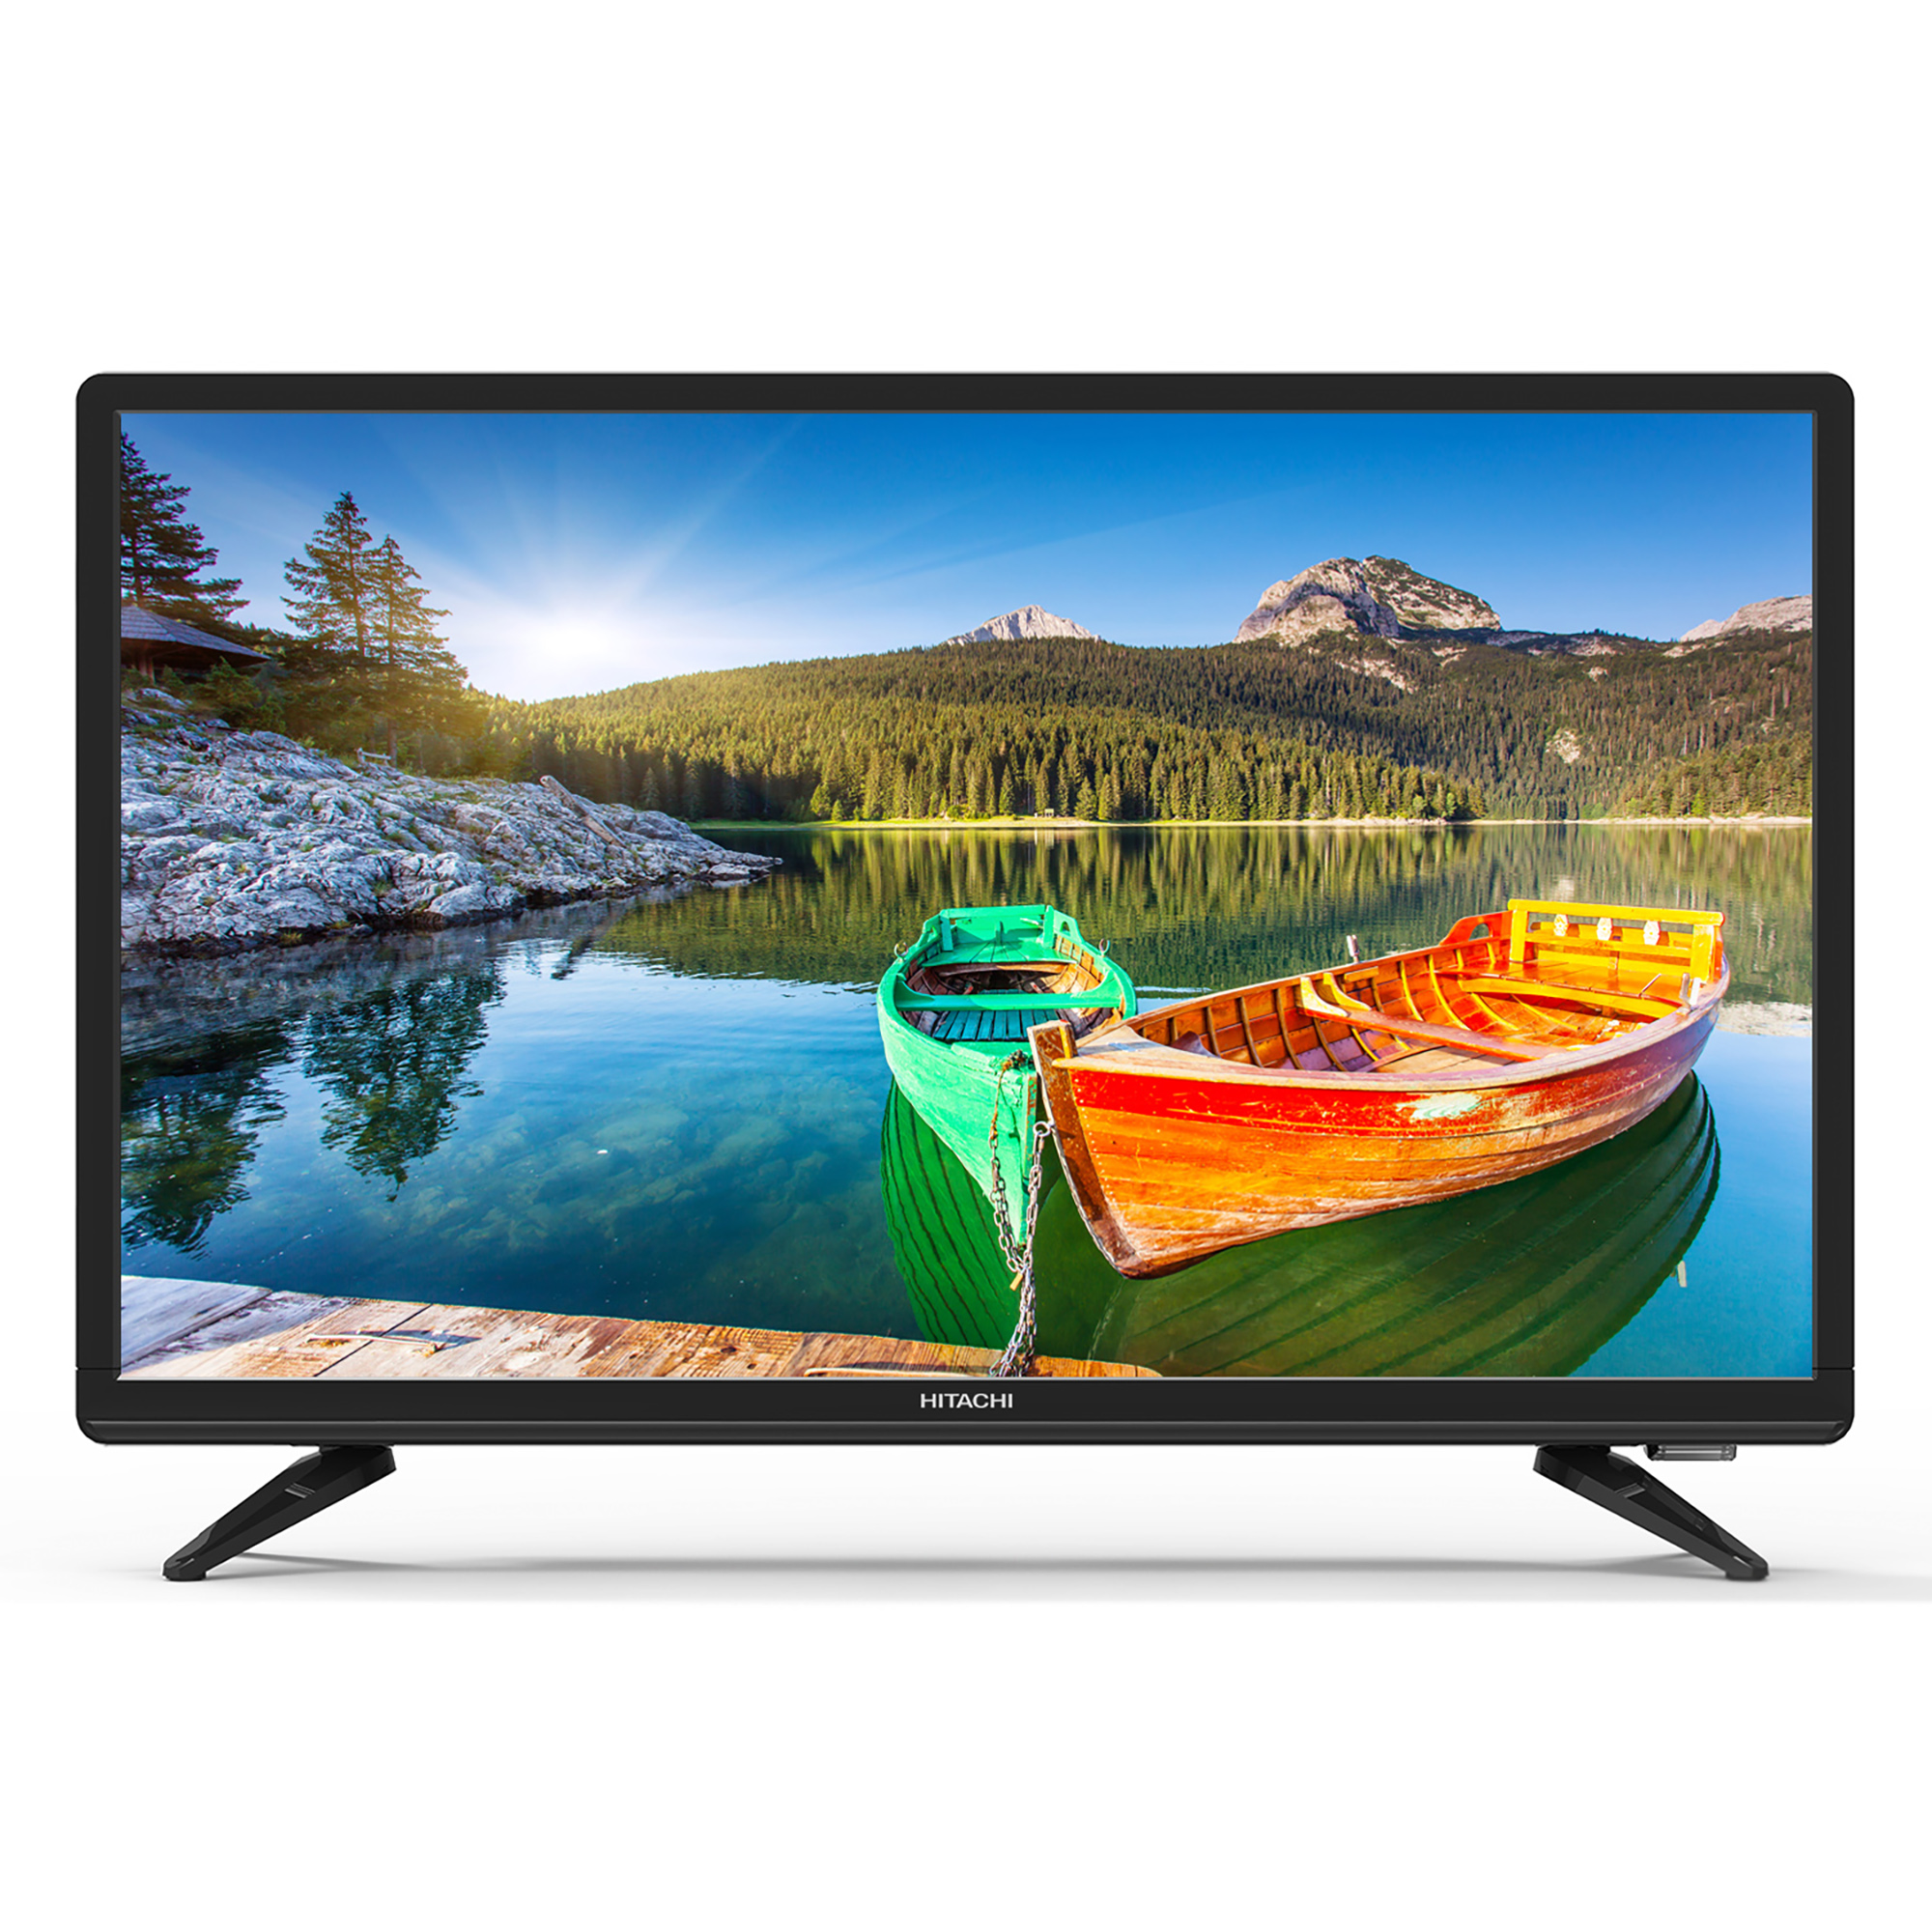 "Hitachi 22"" Class FHD (1080P) LED TV (22E30)"